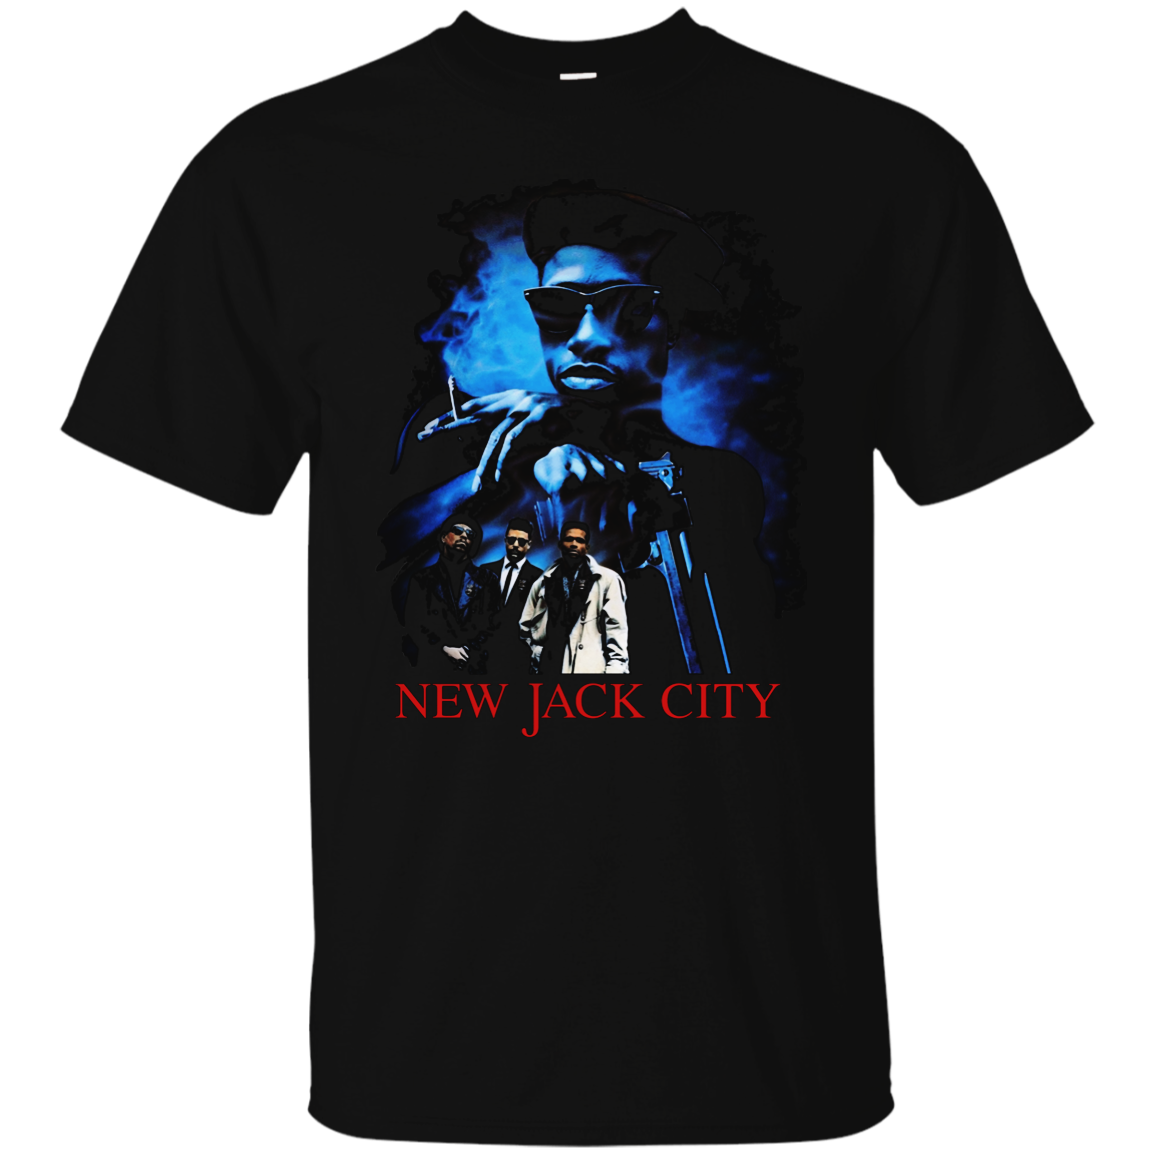 New Jack City, Wesley Snipes, Ice-T, Retro, Hip Hop, Movie, Old School, G200 Gil Summer Short Sleeves Cotton Fashion t Shirt